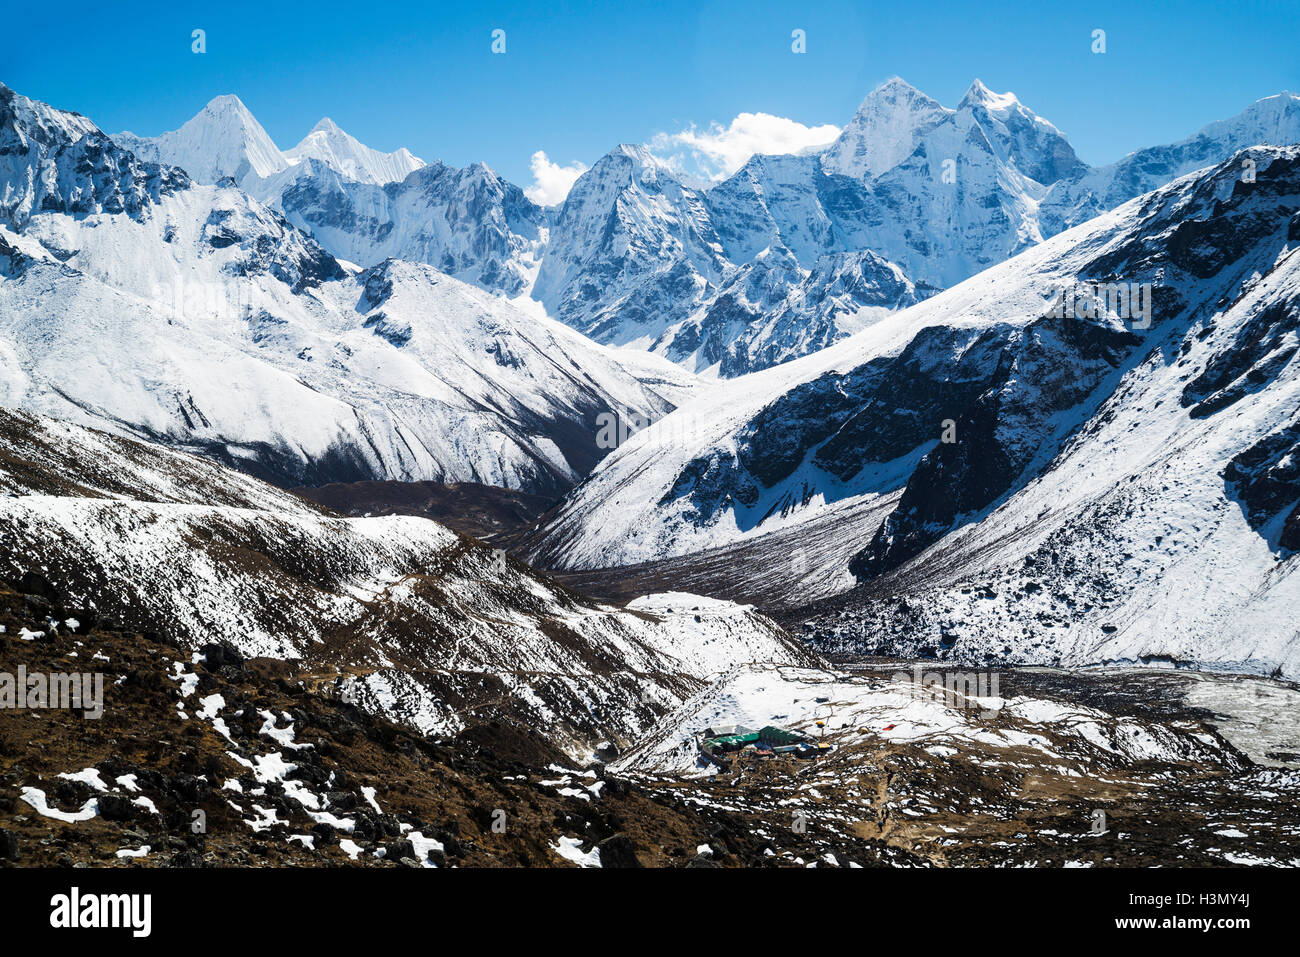 Mount Everest Trek, Nepal - Stock Image